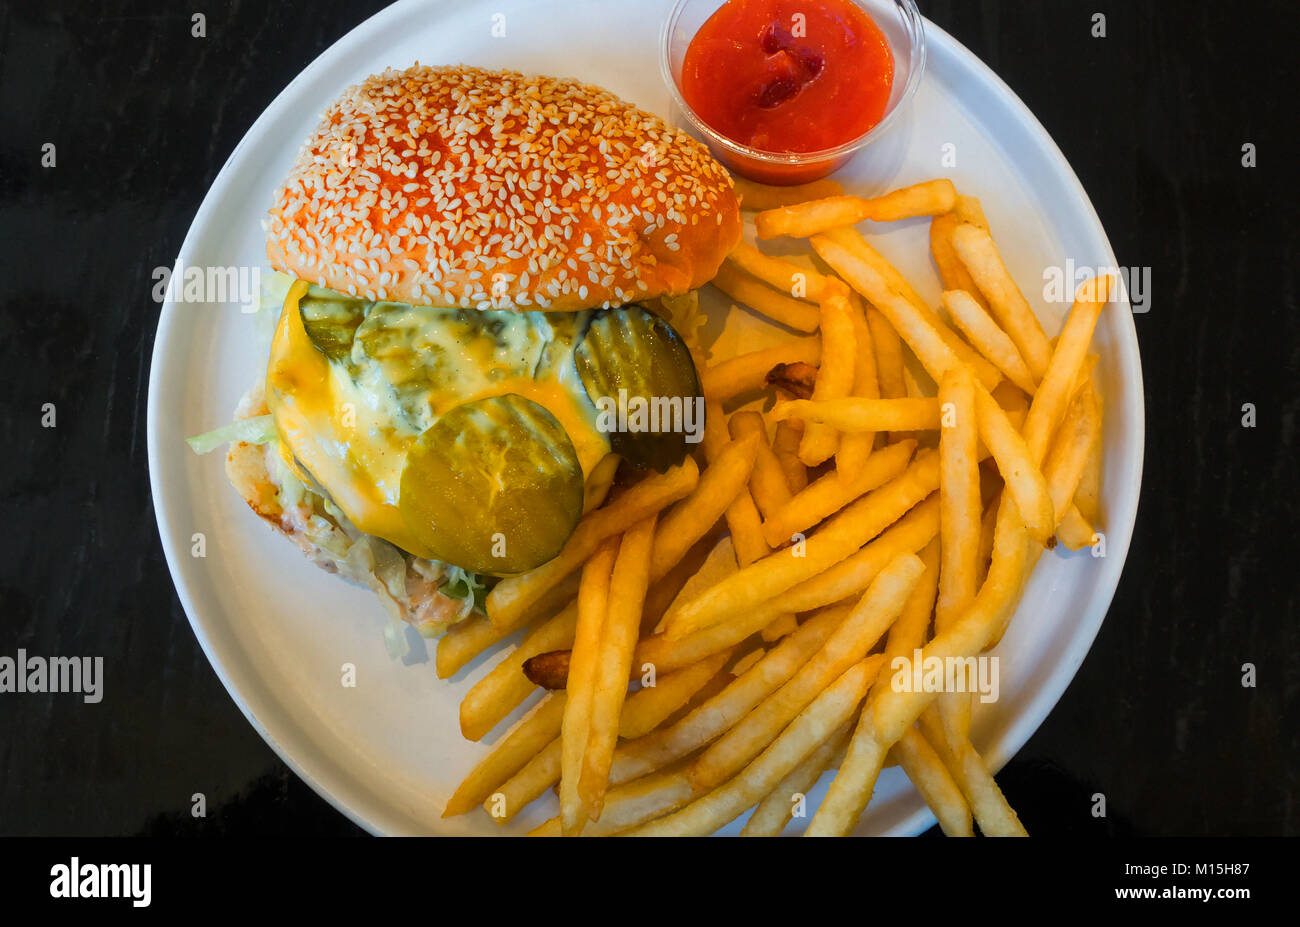 A burger and fries, the Supreme designed by Alvin Cailan for Chefs Club Counter in SoHo, New York City - Stock Image